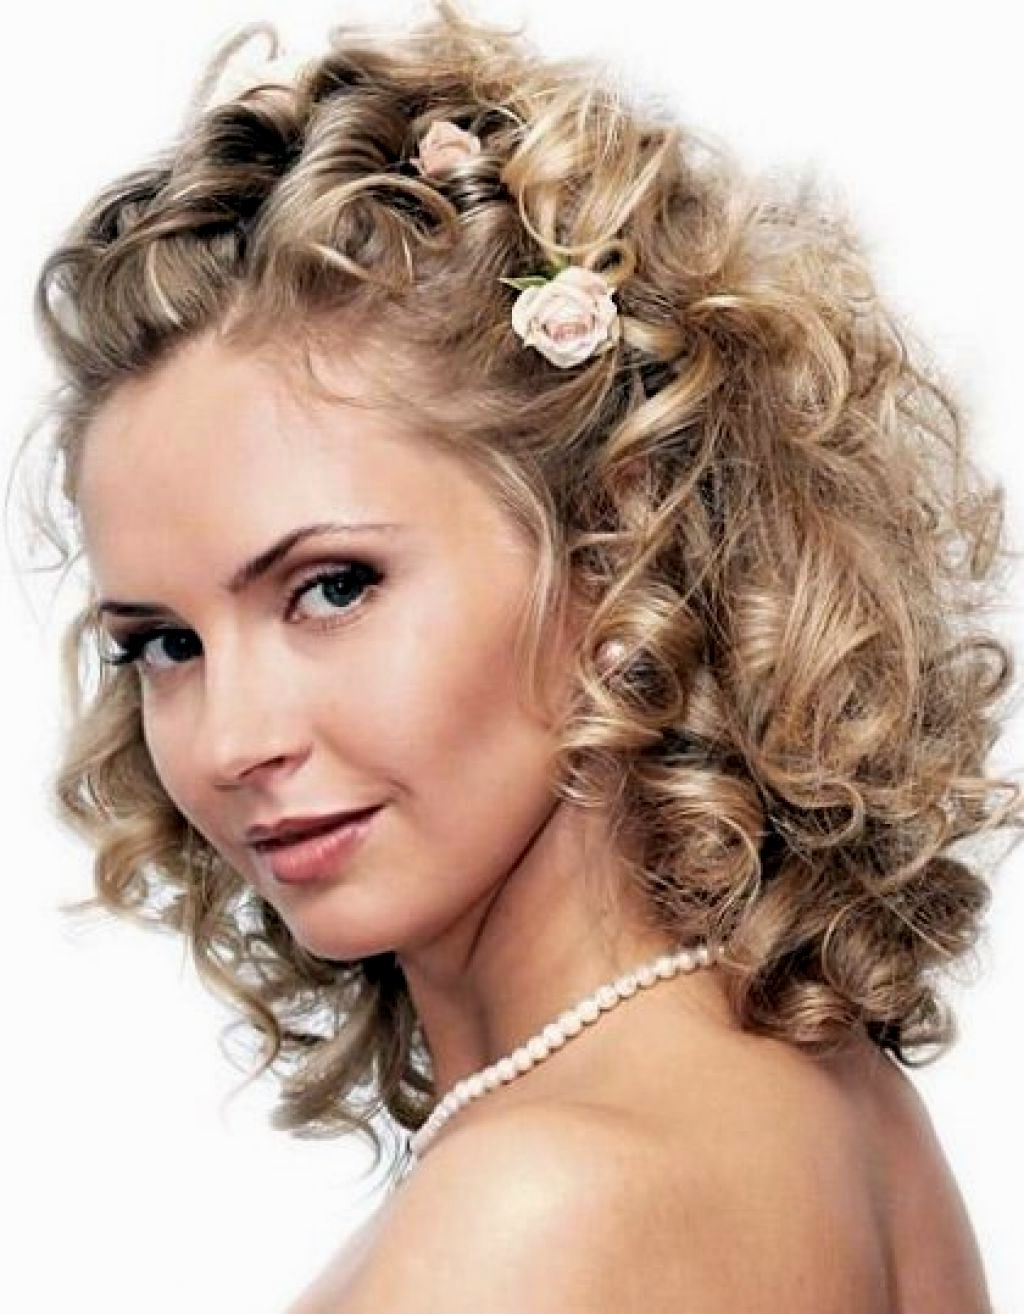 Bridalrstyles Medium Lengthr Wedding For With Veil Long And Headband For Favorite Wedding Hairstyles For Medium Length With Black Hair (View 4 of 15)